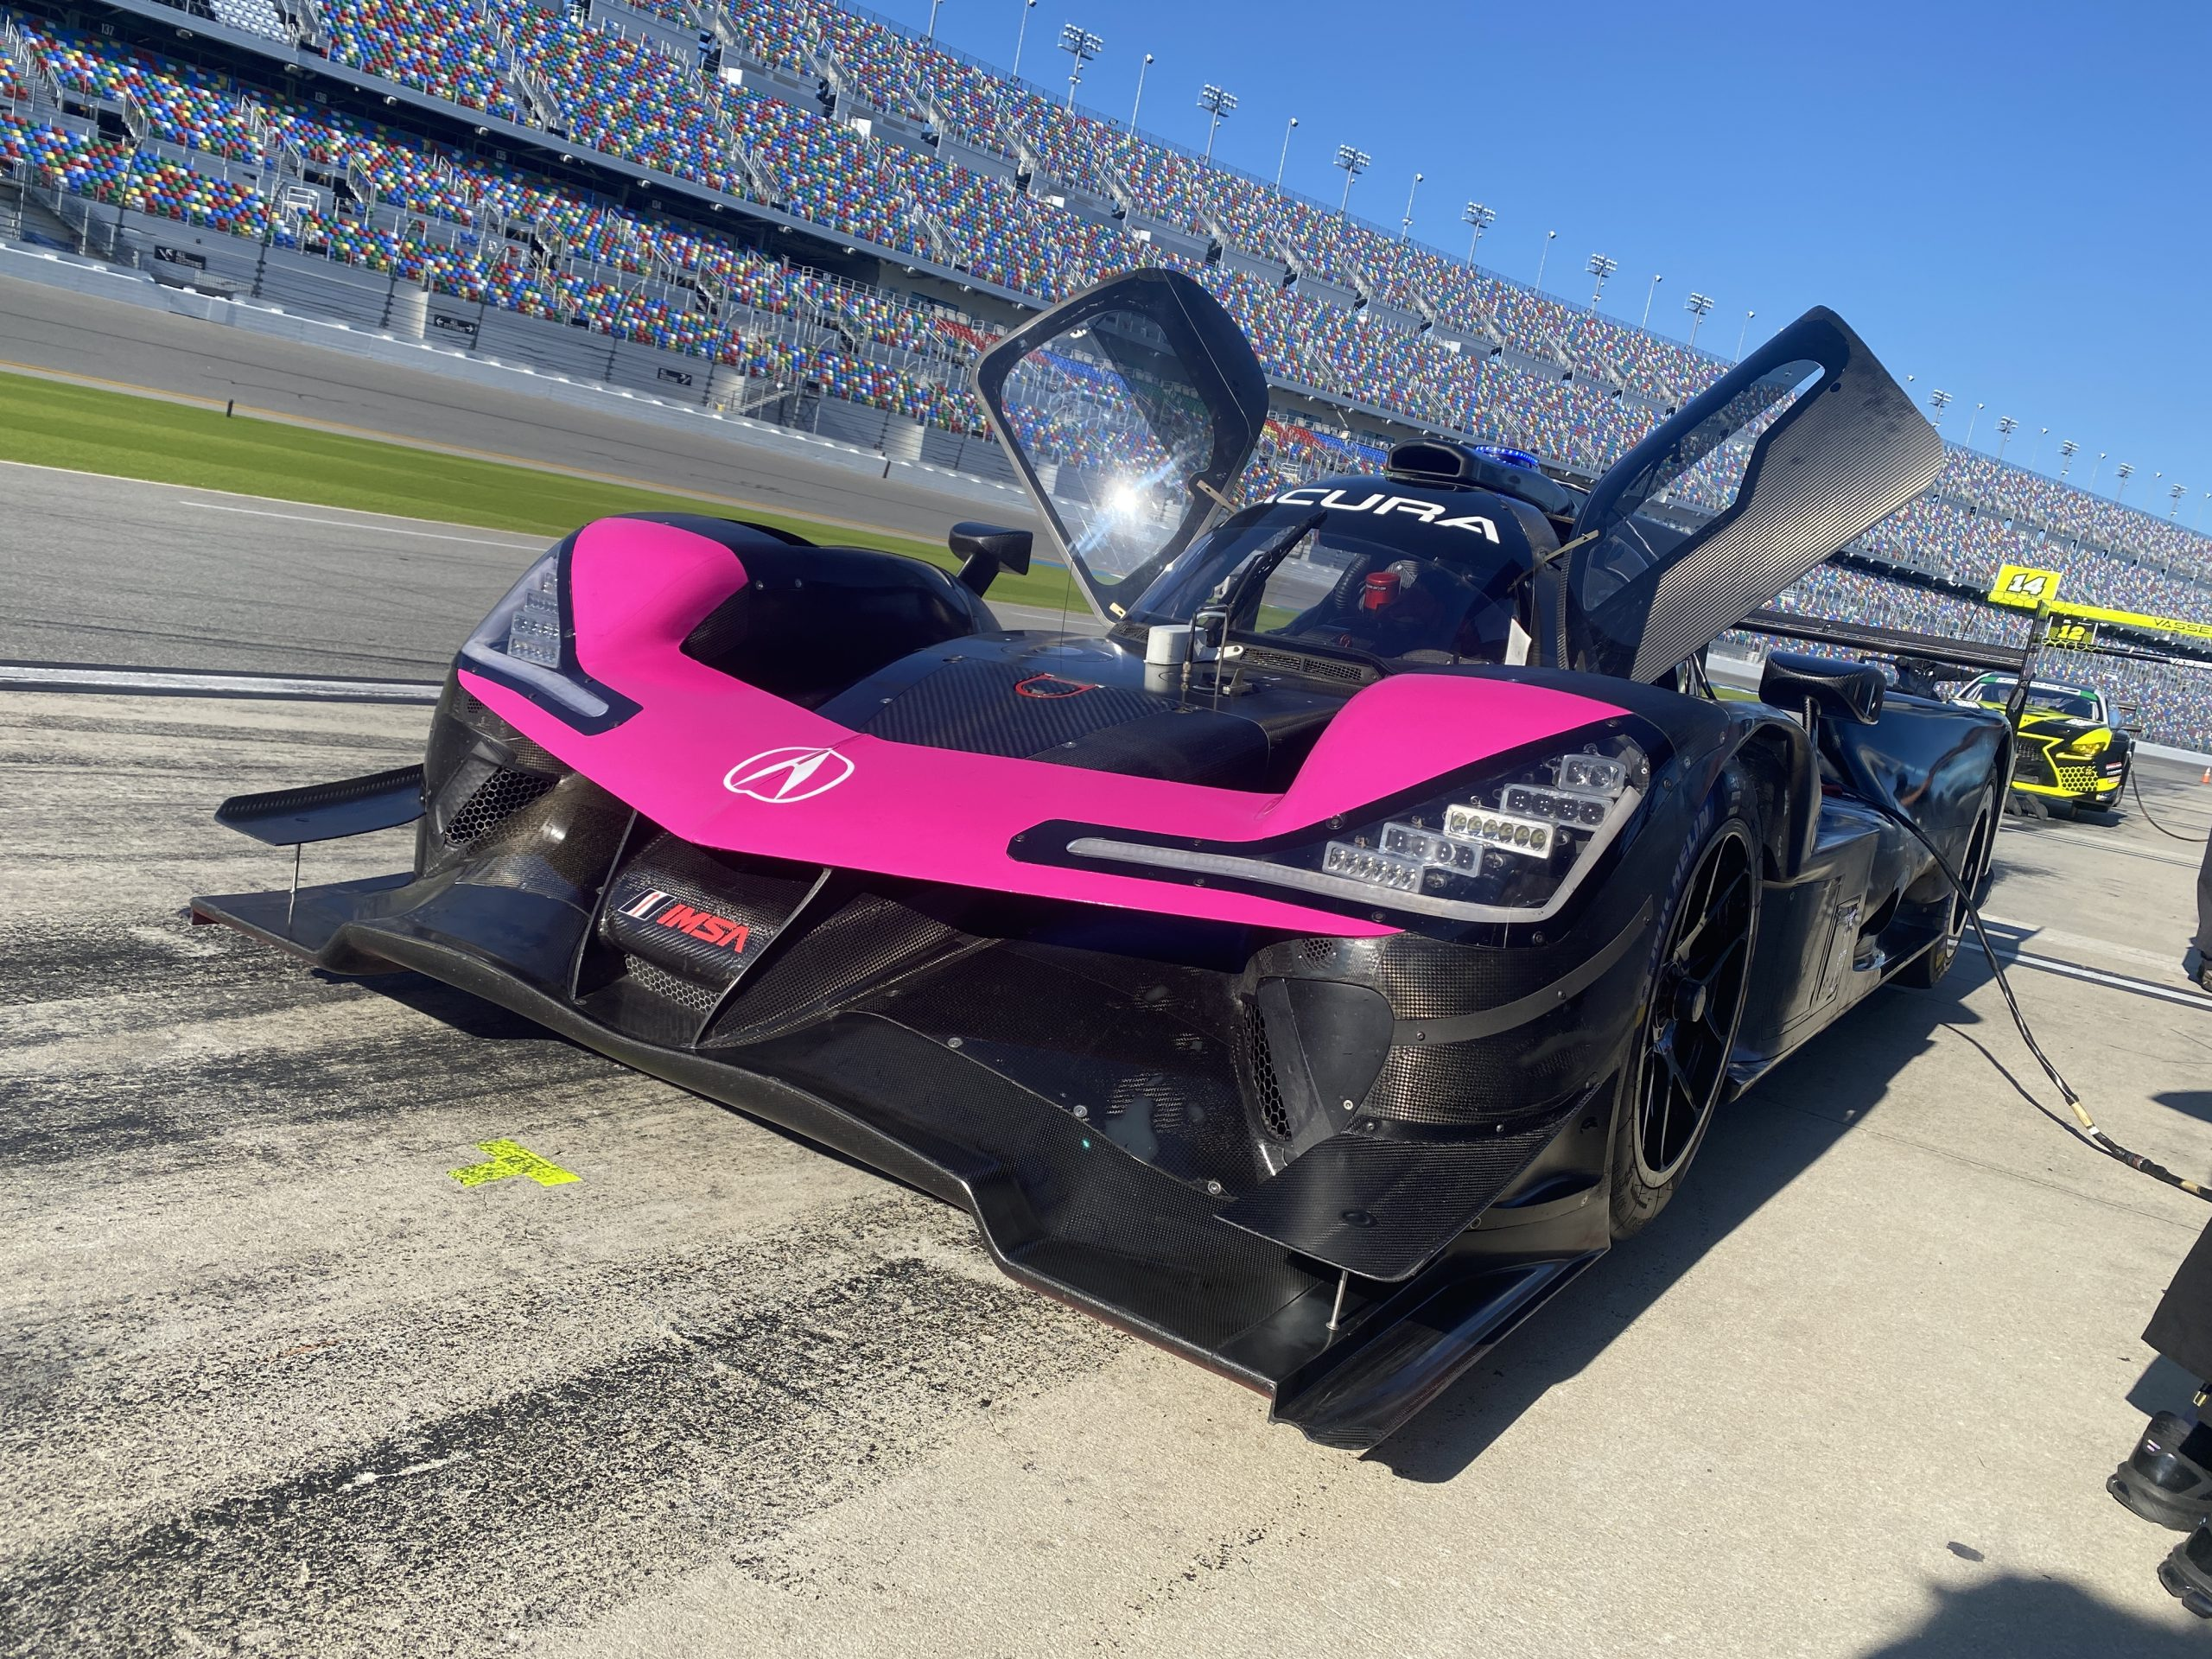 Acura entering LMDh to challenge Porsche and Audi in 2023